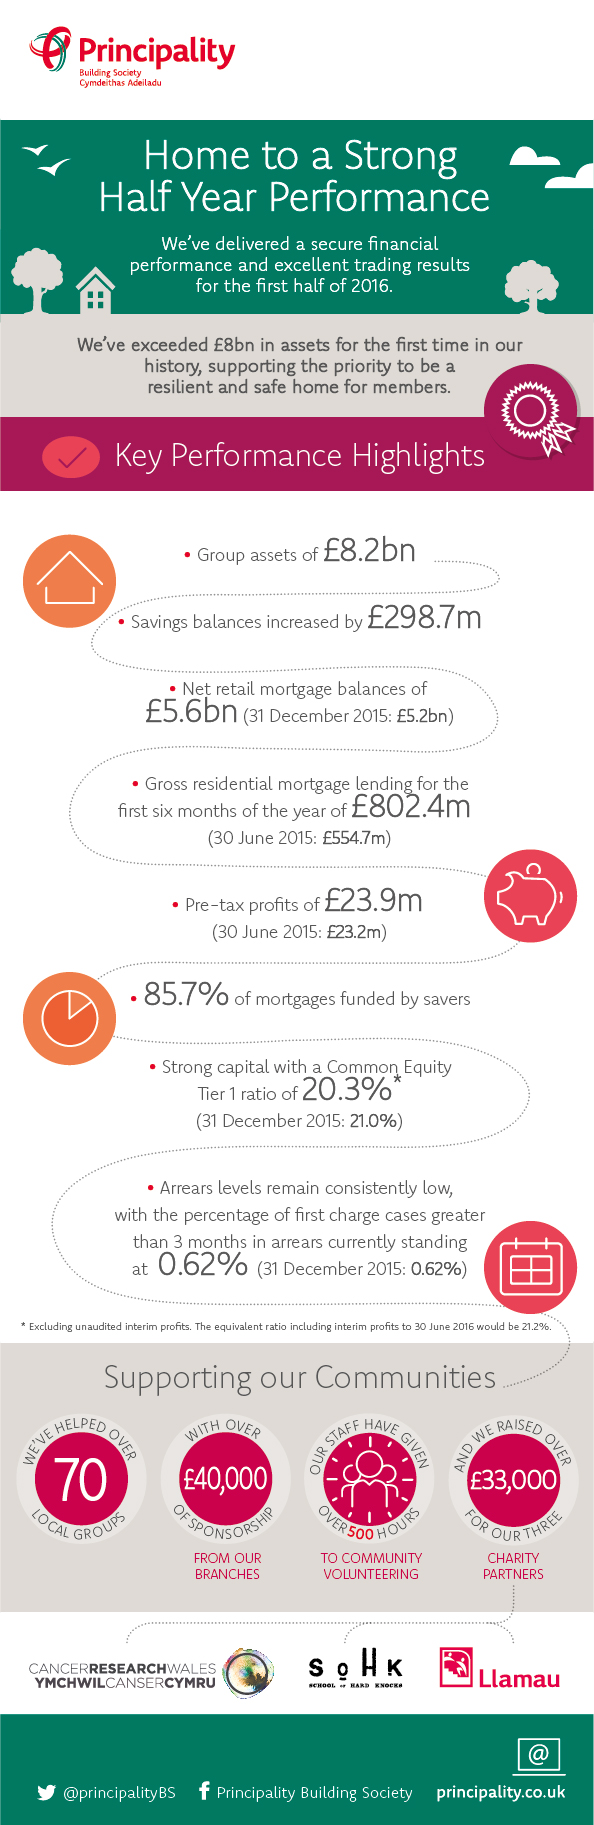 Home to a Strong Half Year Performance Infographic